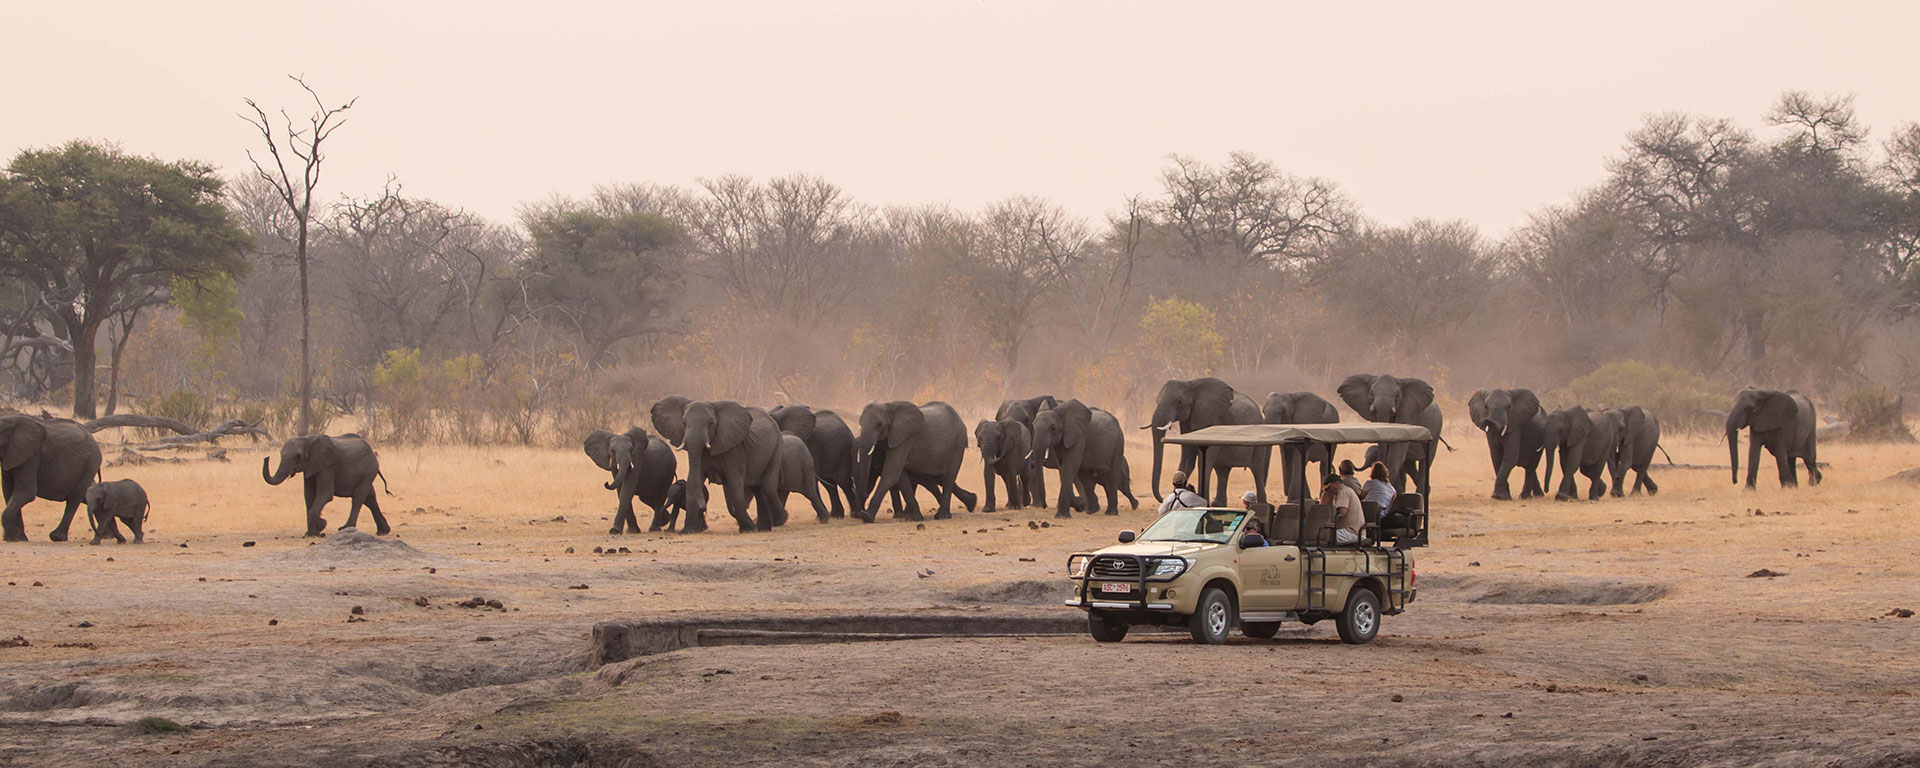 Best African Safari Tours Our Top 10 Picks Go2africa